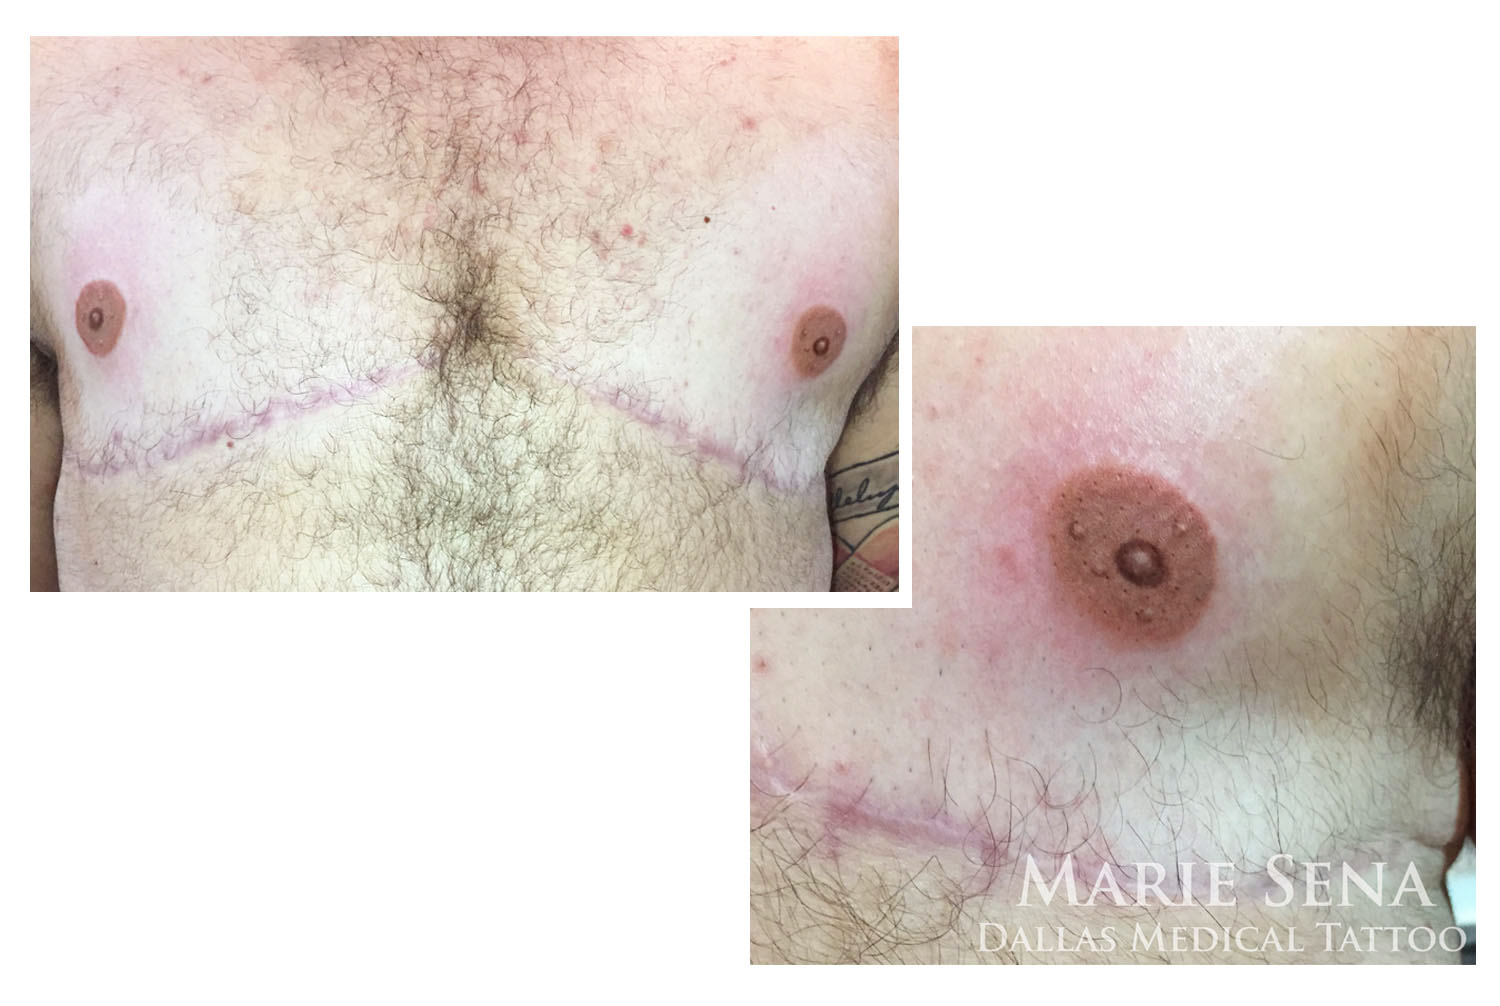 Freshly completed male 3D Areola Tattoo done post-mastectomy as part of transitioning.